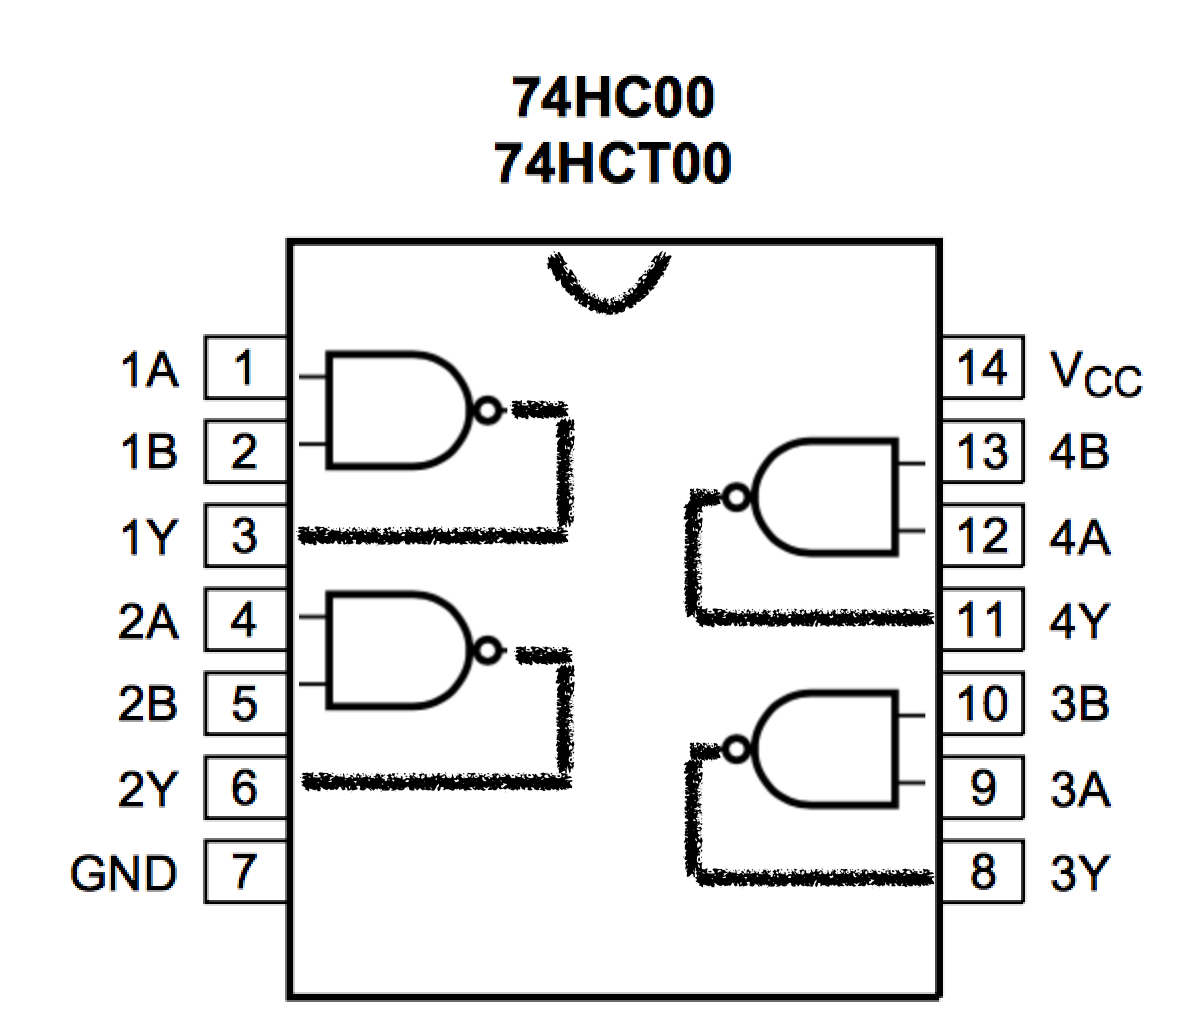 Circuit Diagram Of A Nand Gate Building 4 Bit Shift Register From 7400 Gates For Gpio Output I Soldered Up Four D Latches